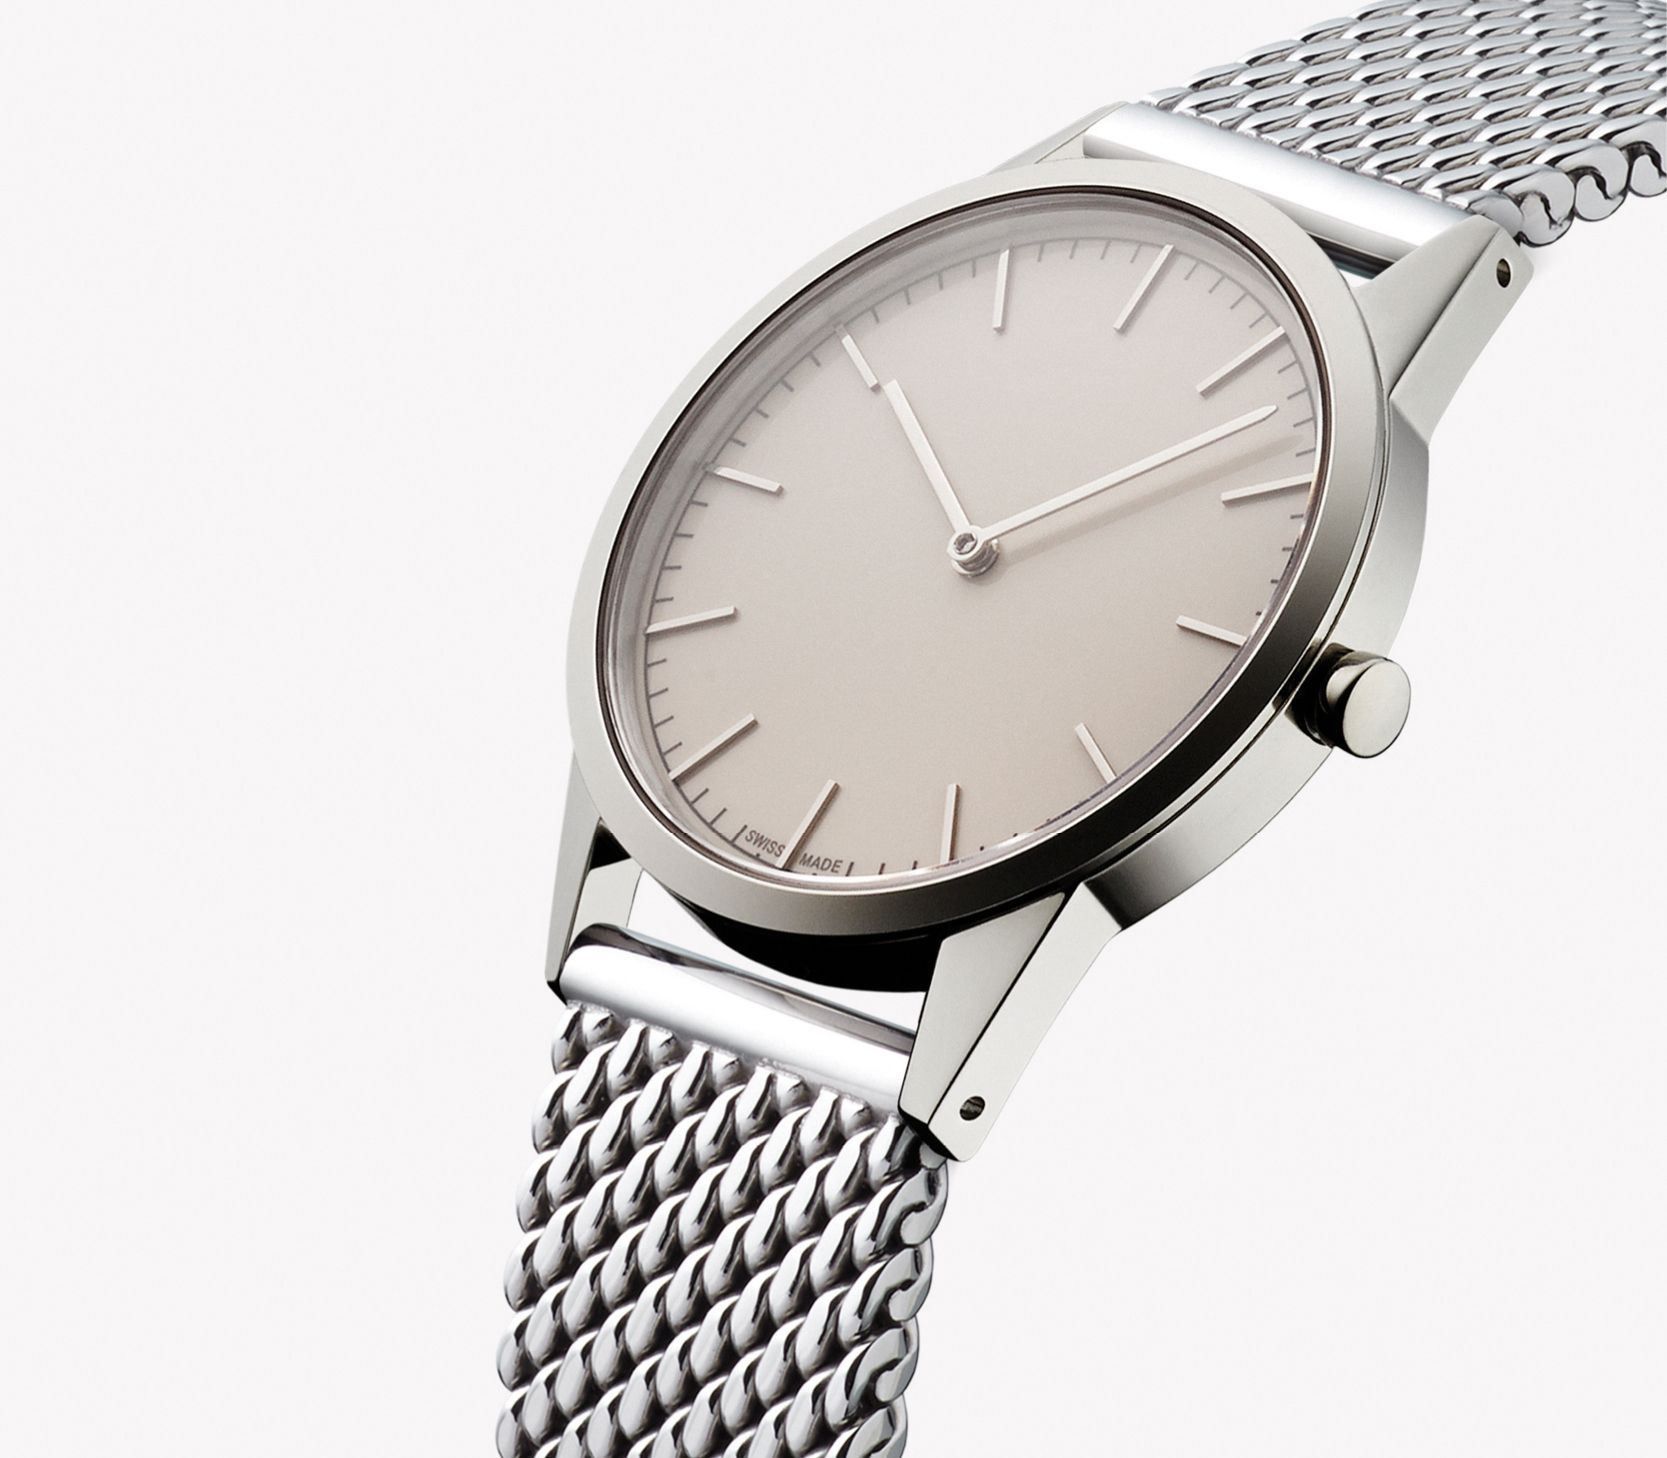 Keep the remarkable close at hand with a timeless #firstluxurysite watches around your wrist. #firstluxurysite,#firstluxurysite.com,#firstluxury site